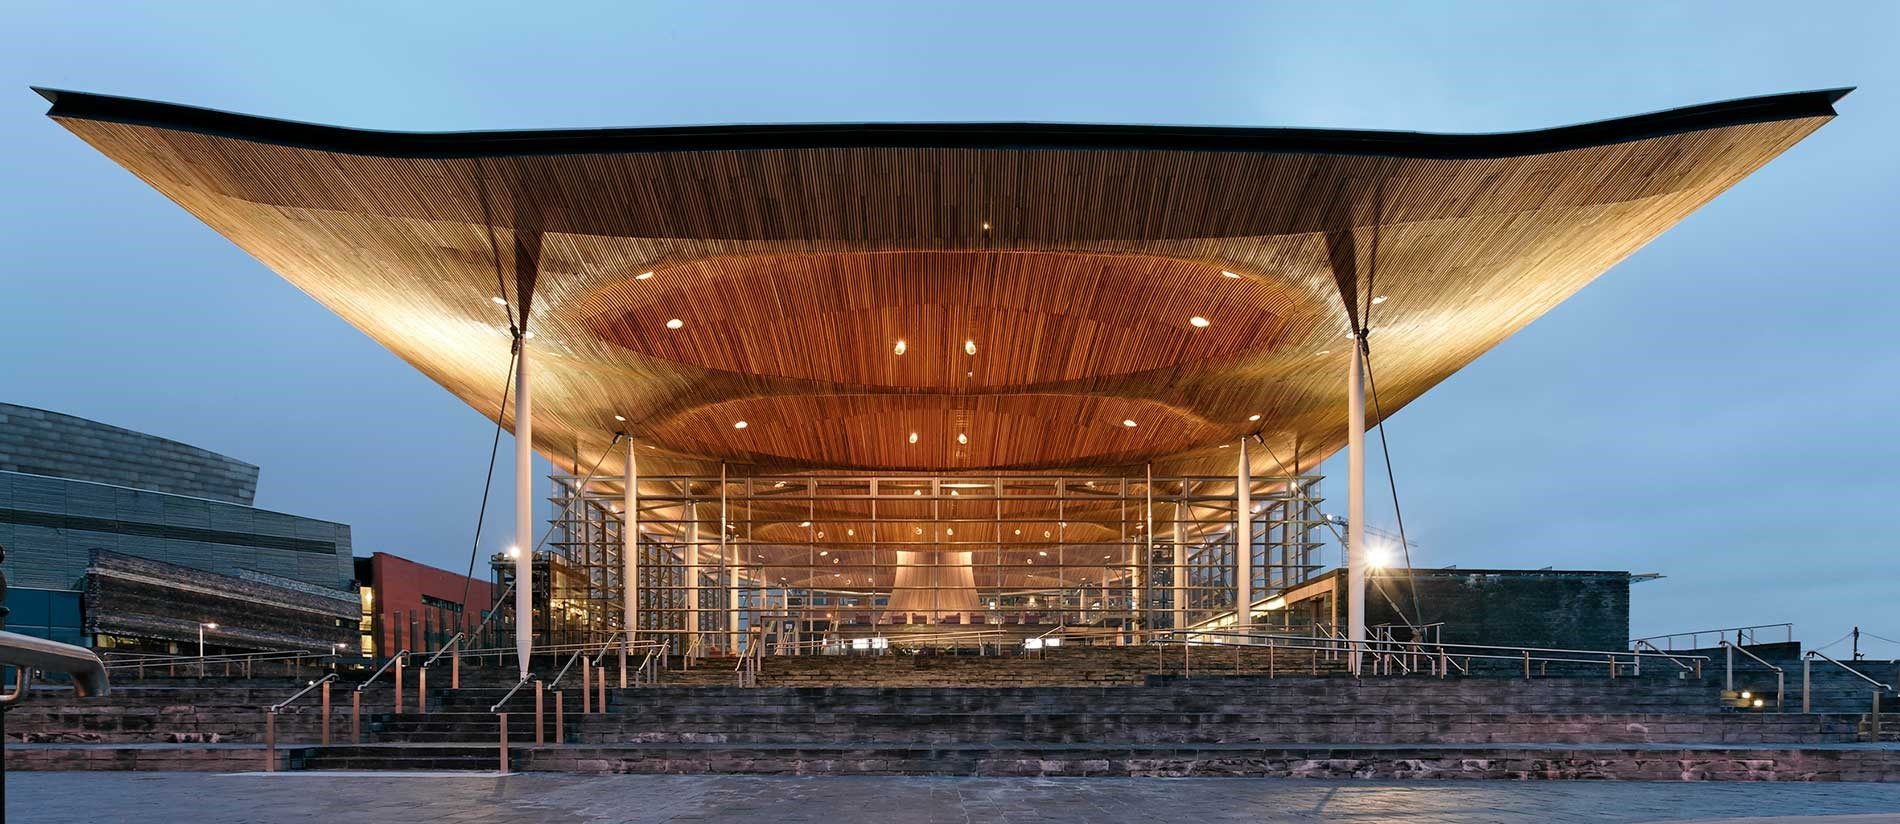 Exterior view of the Welsh Assembly Building